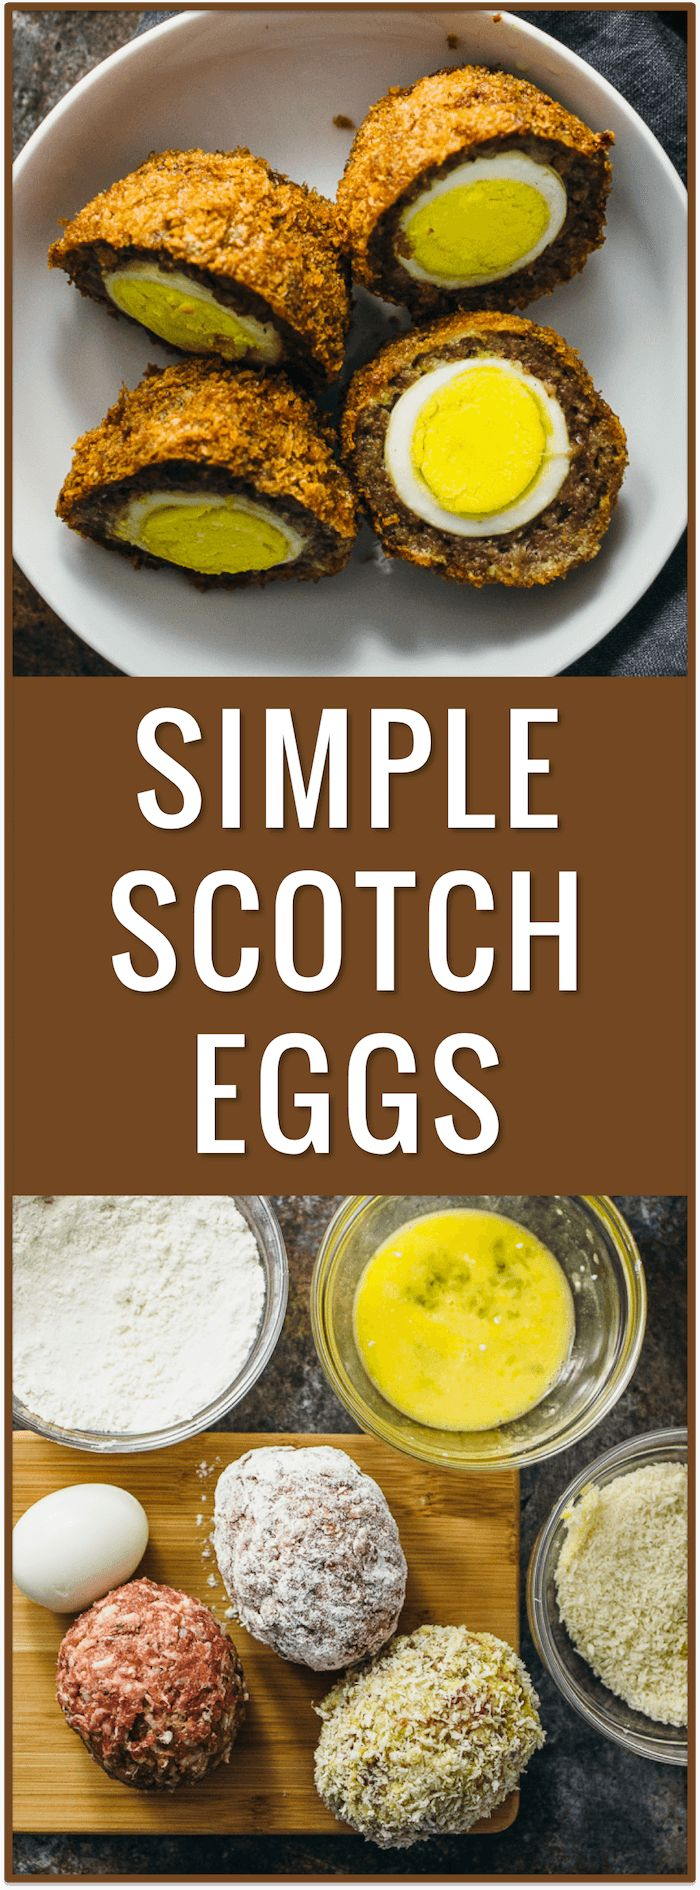 simple easy scotch eggs, baked, fried, sauce, scottish, irish, british, ground meat, pork sausage, dinner recipe, protein, portable snack via @savory_tooth